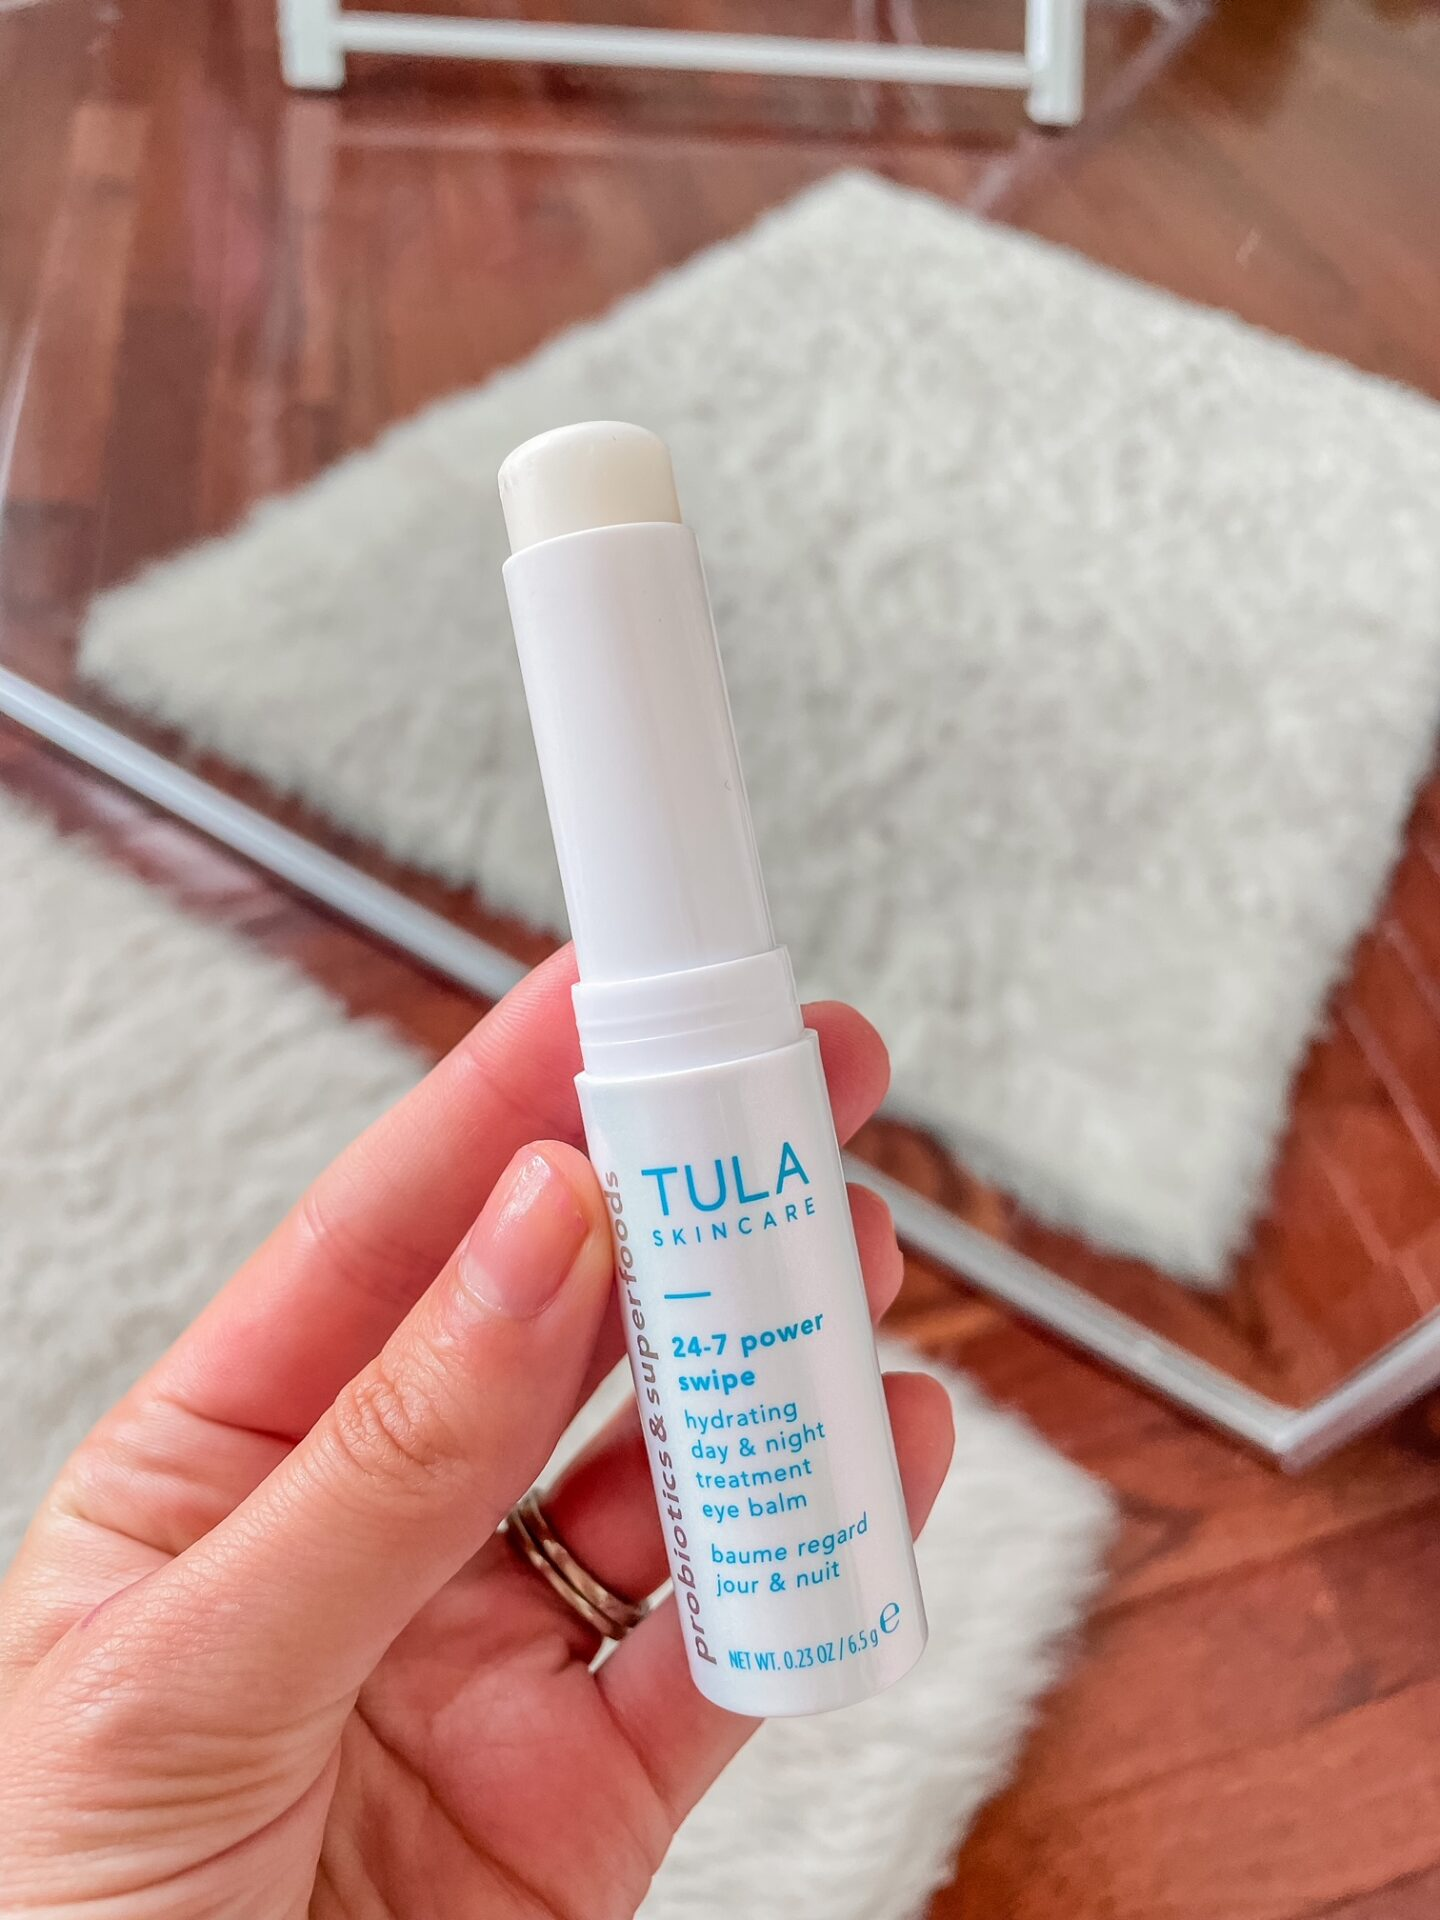 An Honest Review of the new Tula Hydrating Treatment Eye Balm - the 24/7 power Swipe!